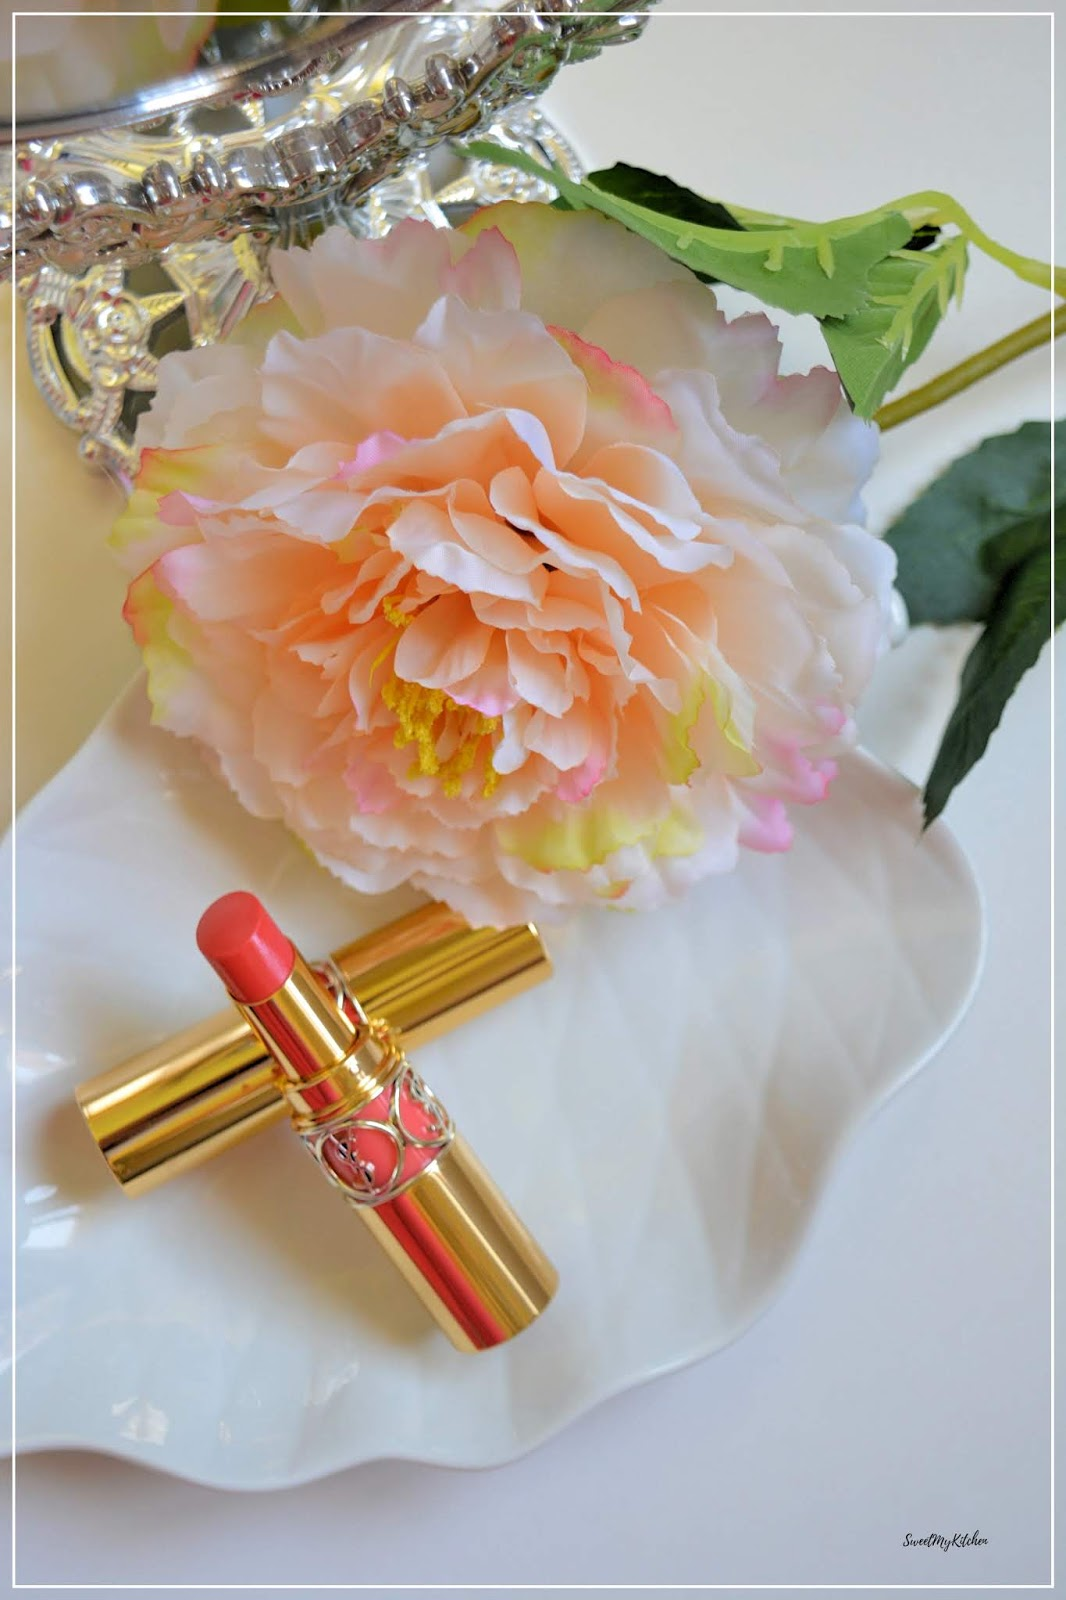 Ysl makeup lipstick review rose rive gauche